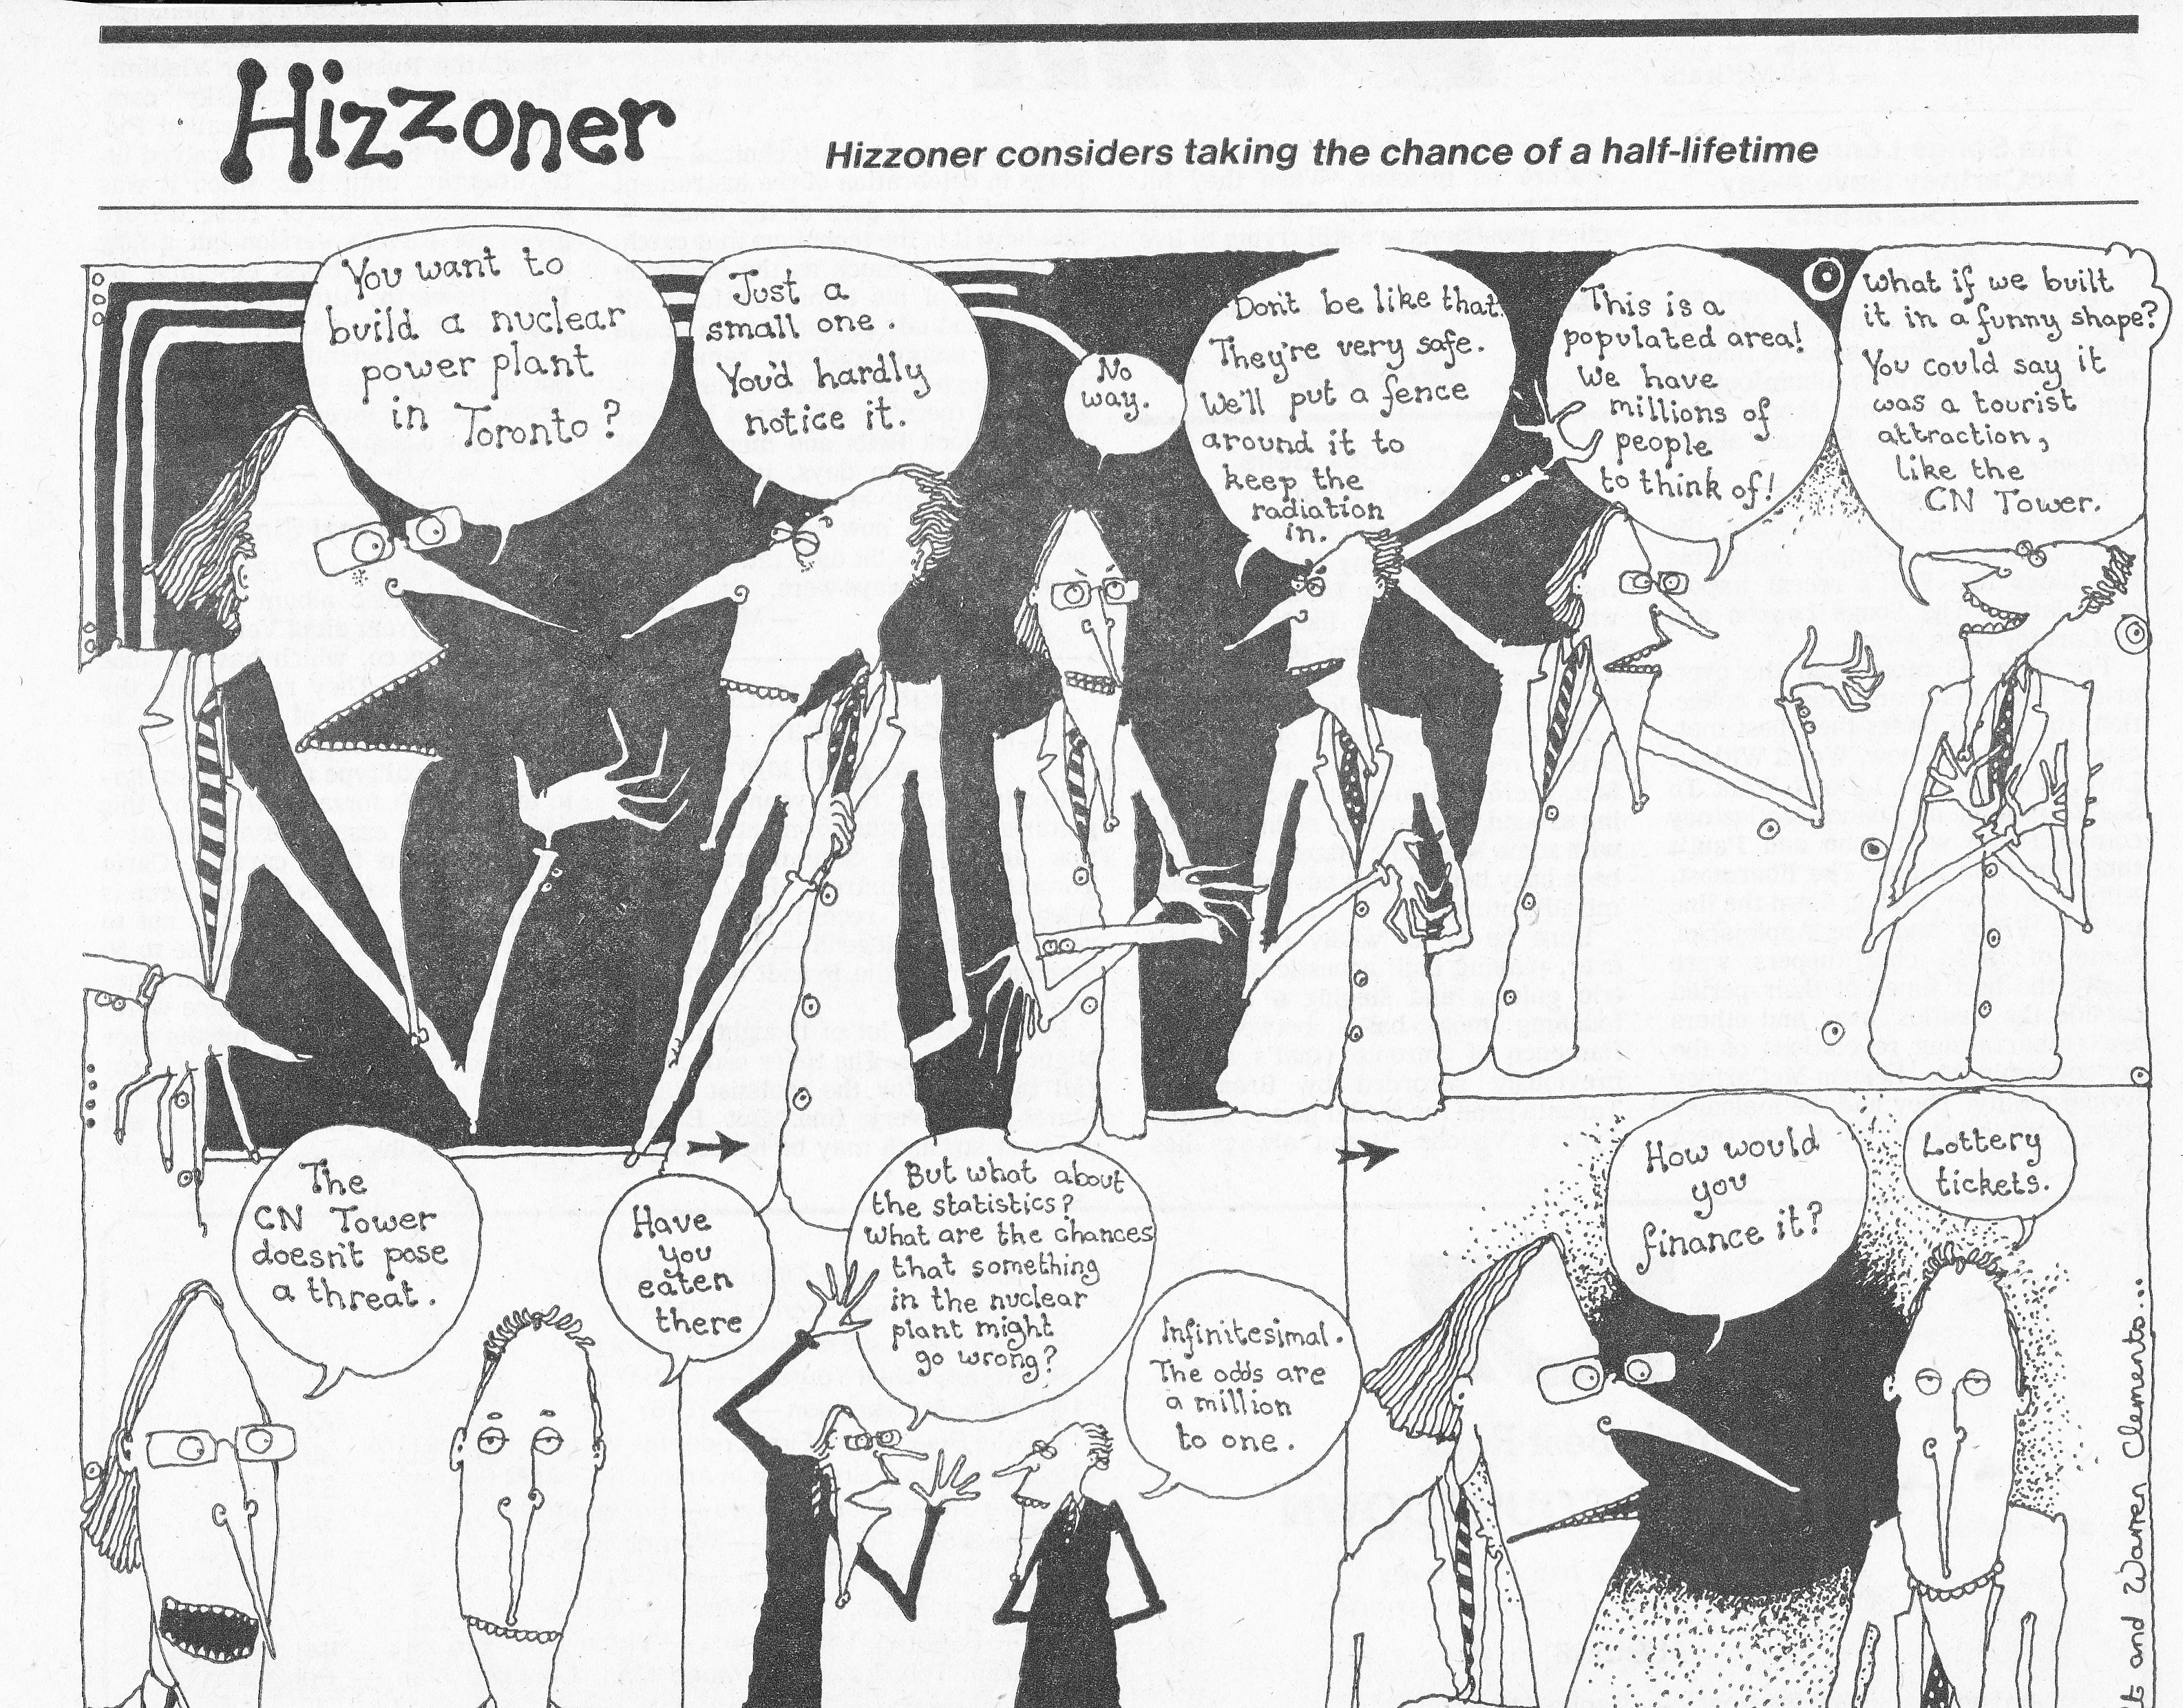 C:\Users\Robert\Documents\CARTOONING ILLUSTRATION ANIMATION\IMAGE CARTOON\IMAGE CARTOON H\HIZZONER, fANFARE, 8 Sept 1979,3.jpg